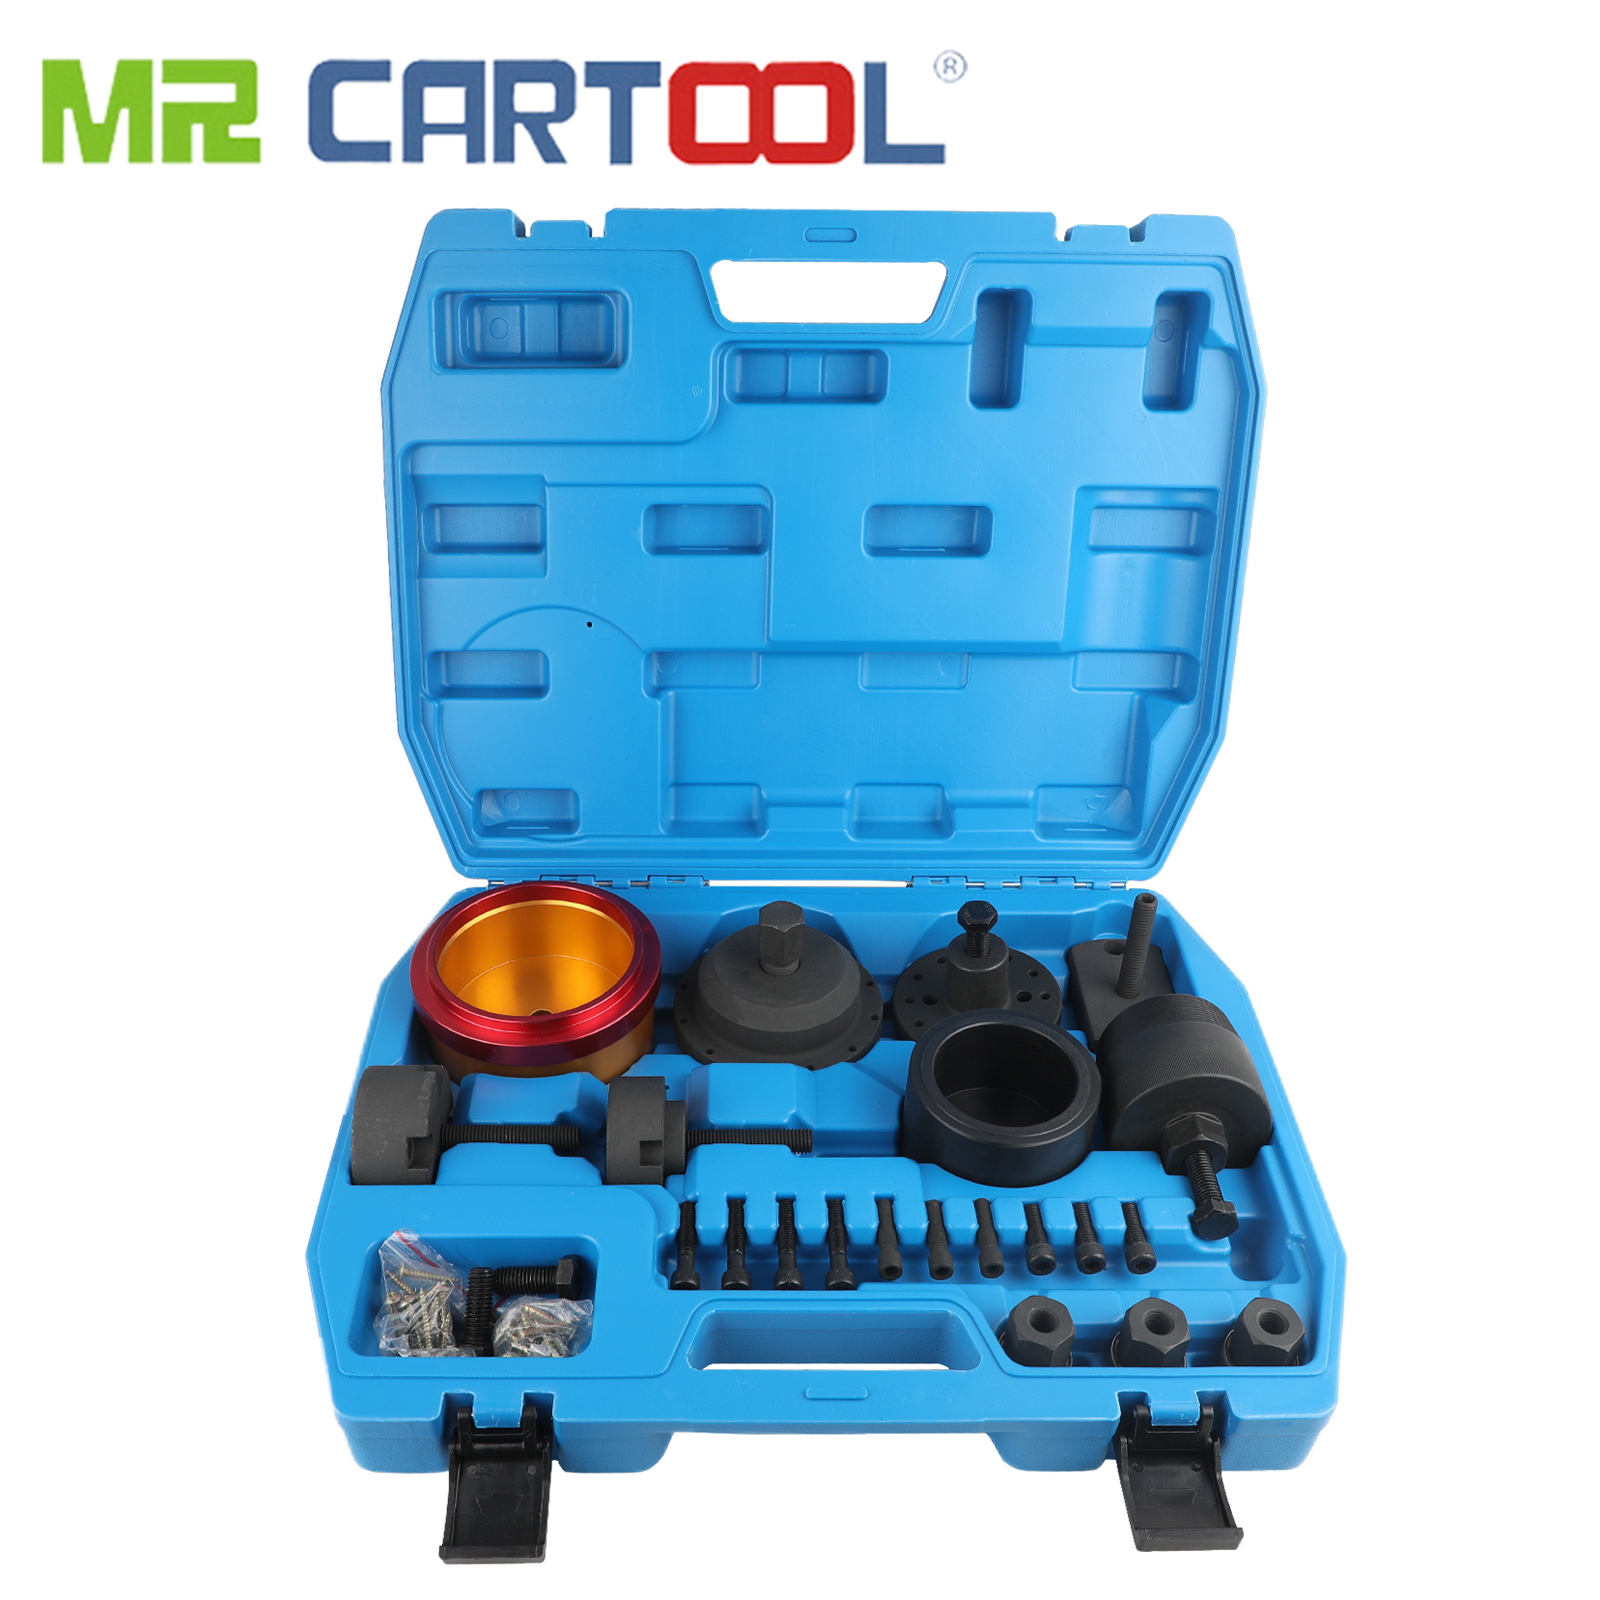 MR CARTOOL Crankshaft Seal Removal Tool Front And Rear Oil Seal Remover &Installer For BMW N40 N42 N45 N46 N46T N52 N53 N54 N55